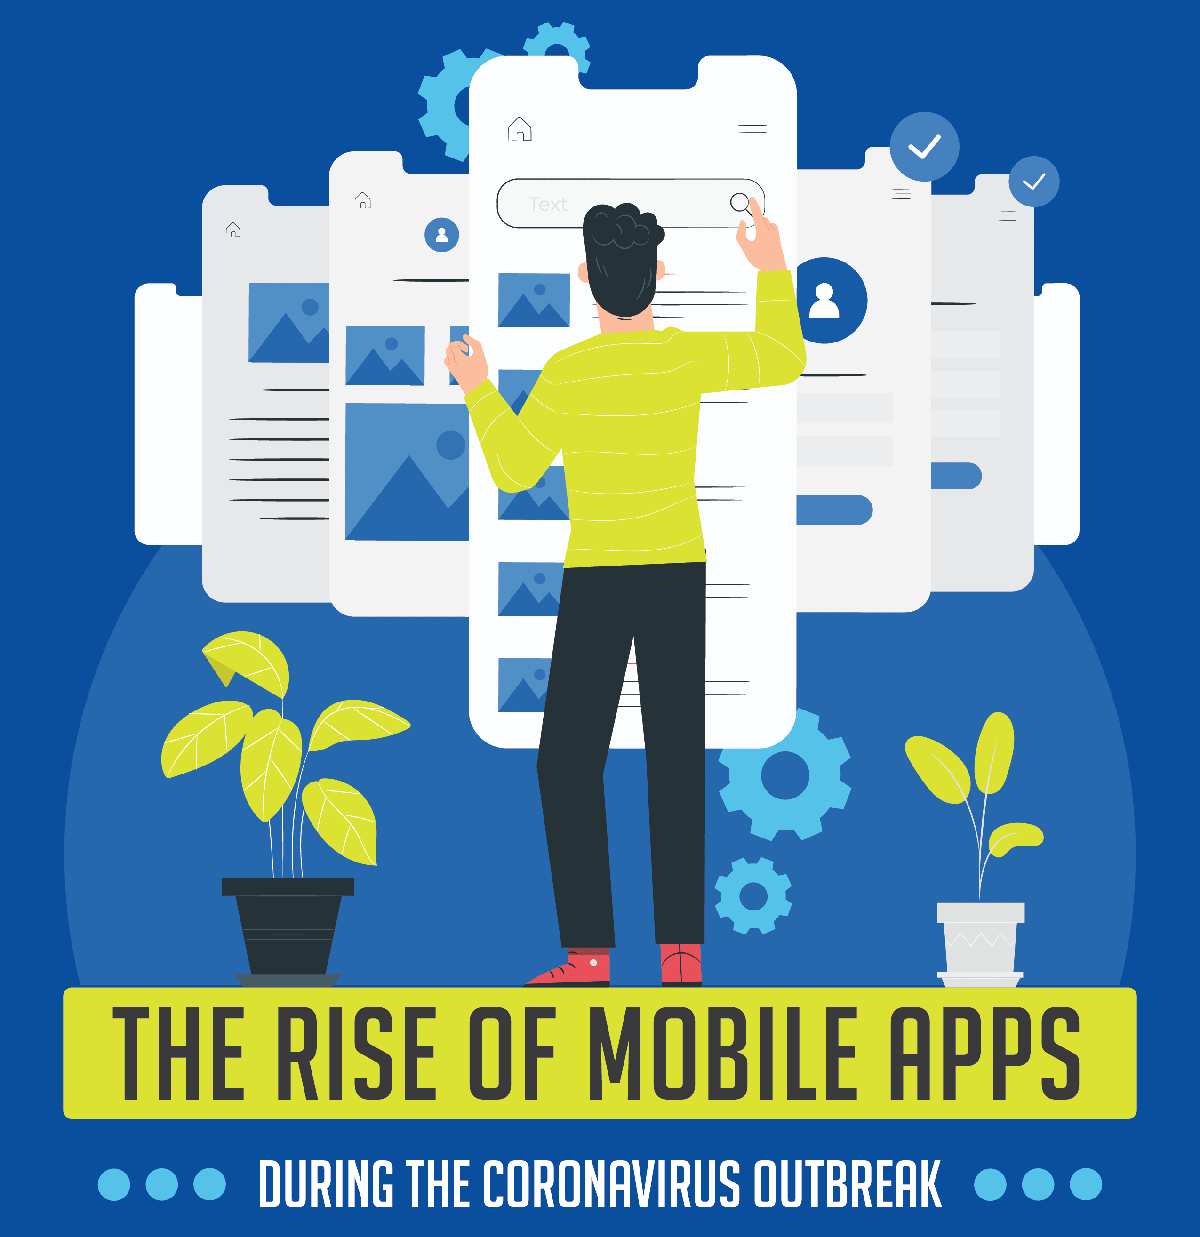 The Rise Of Mobile Apps During the Coronavirus Outbreak